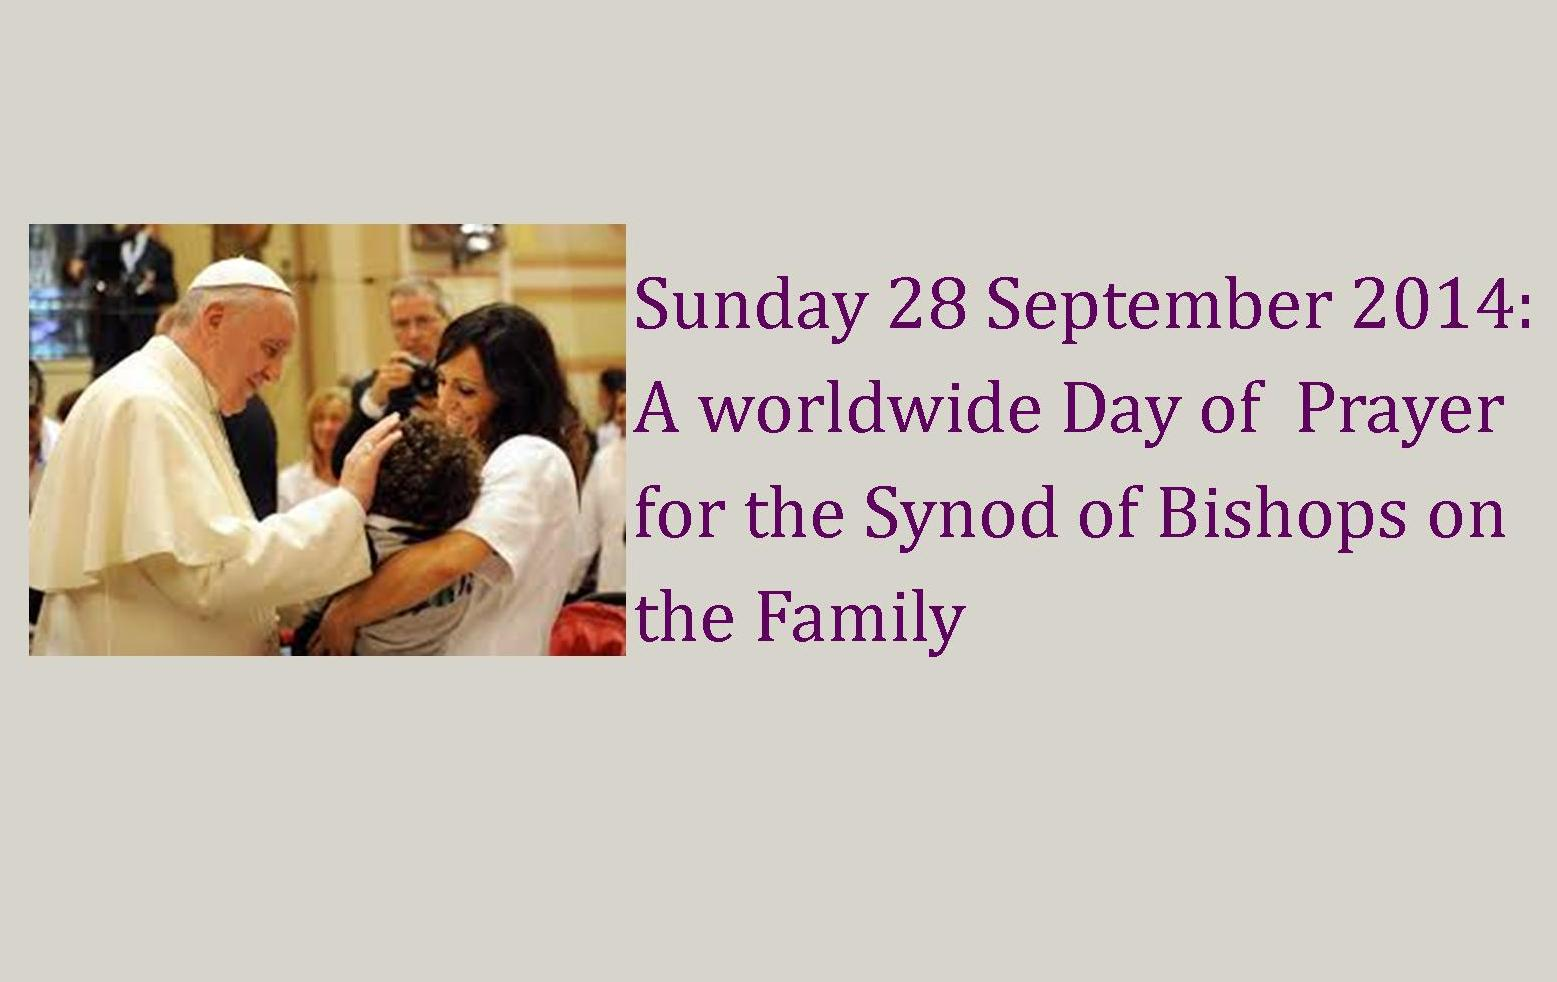 Worldwide Day of Prayer for the Synod of Bishops